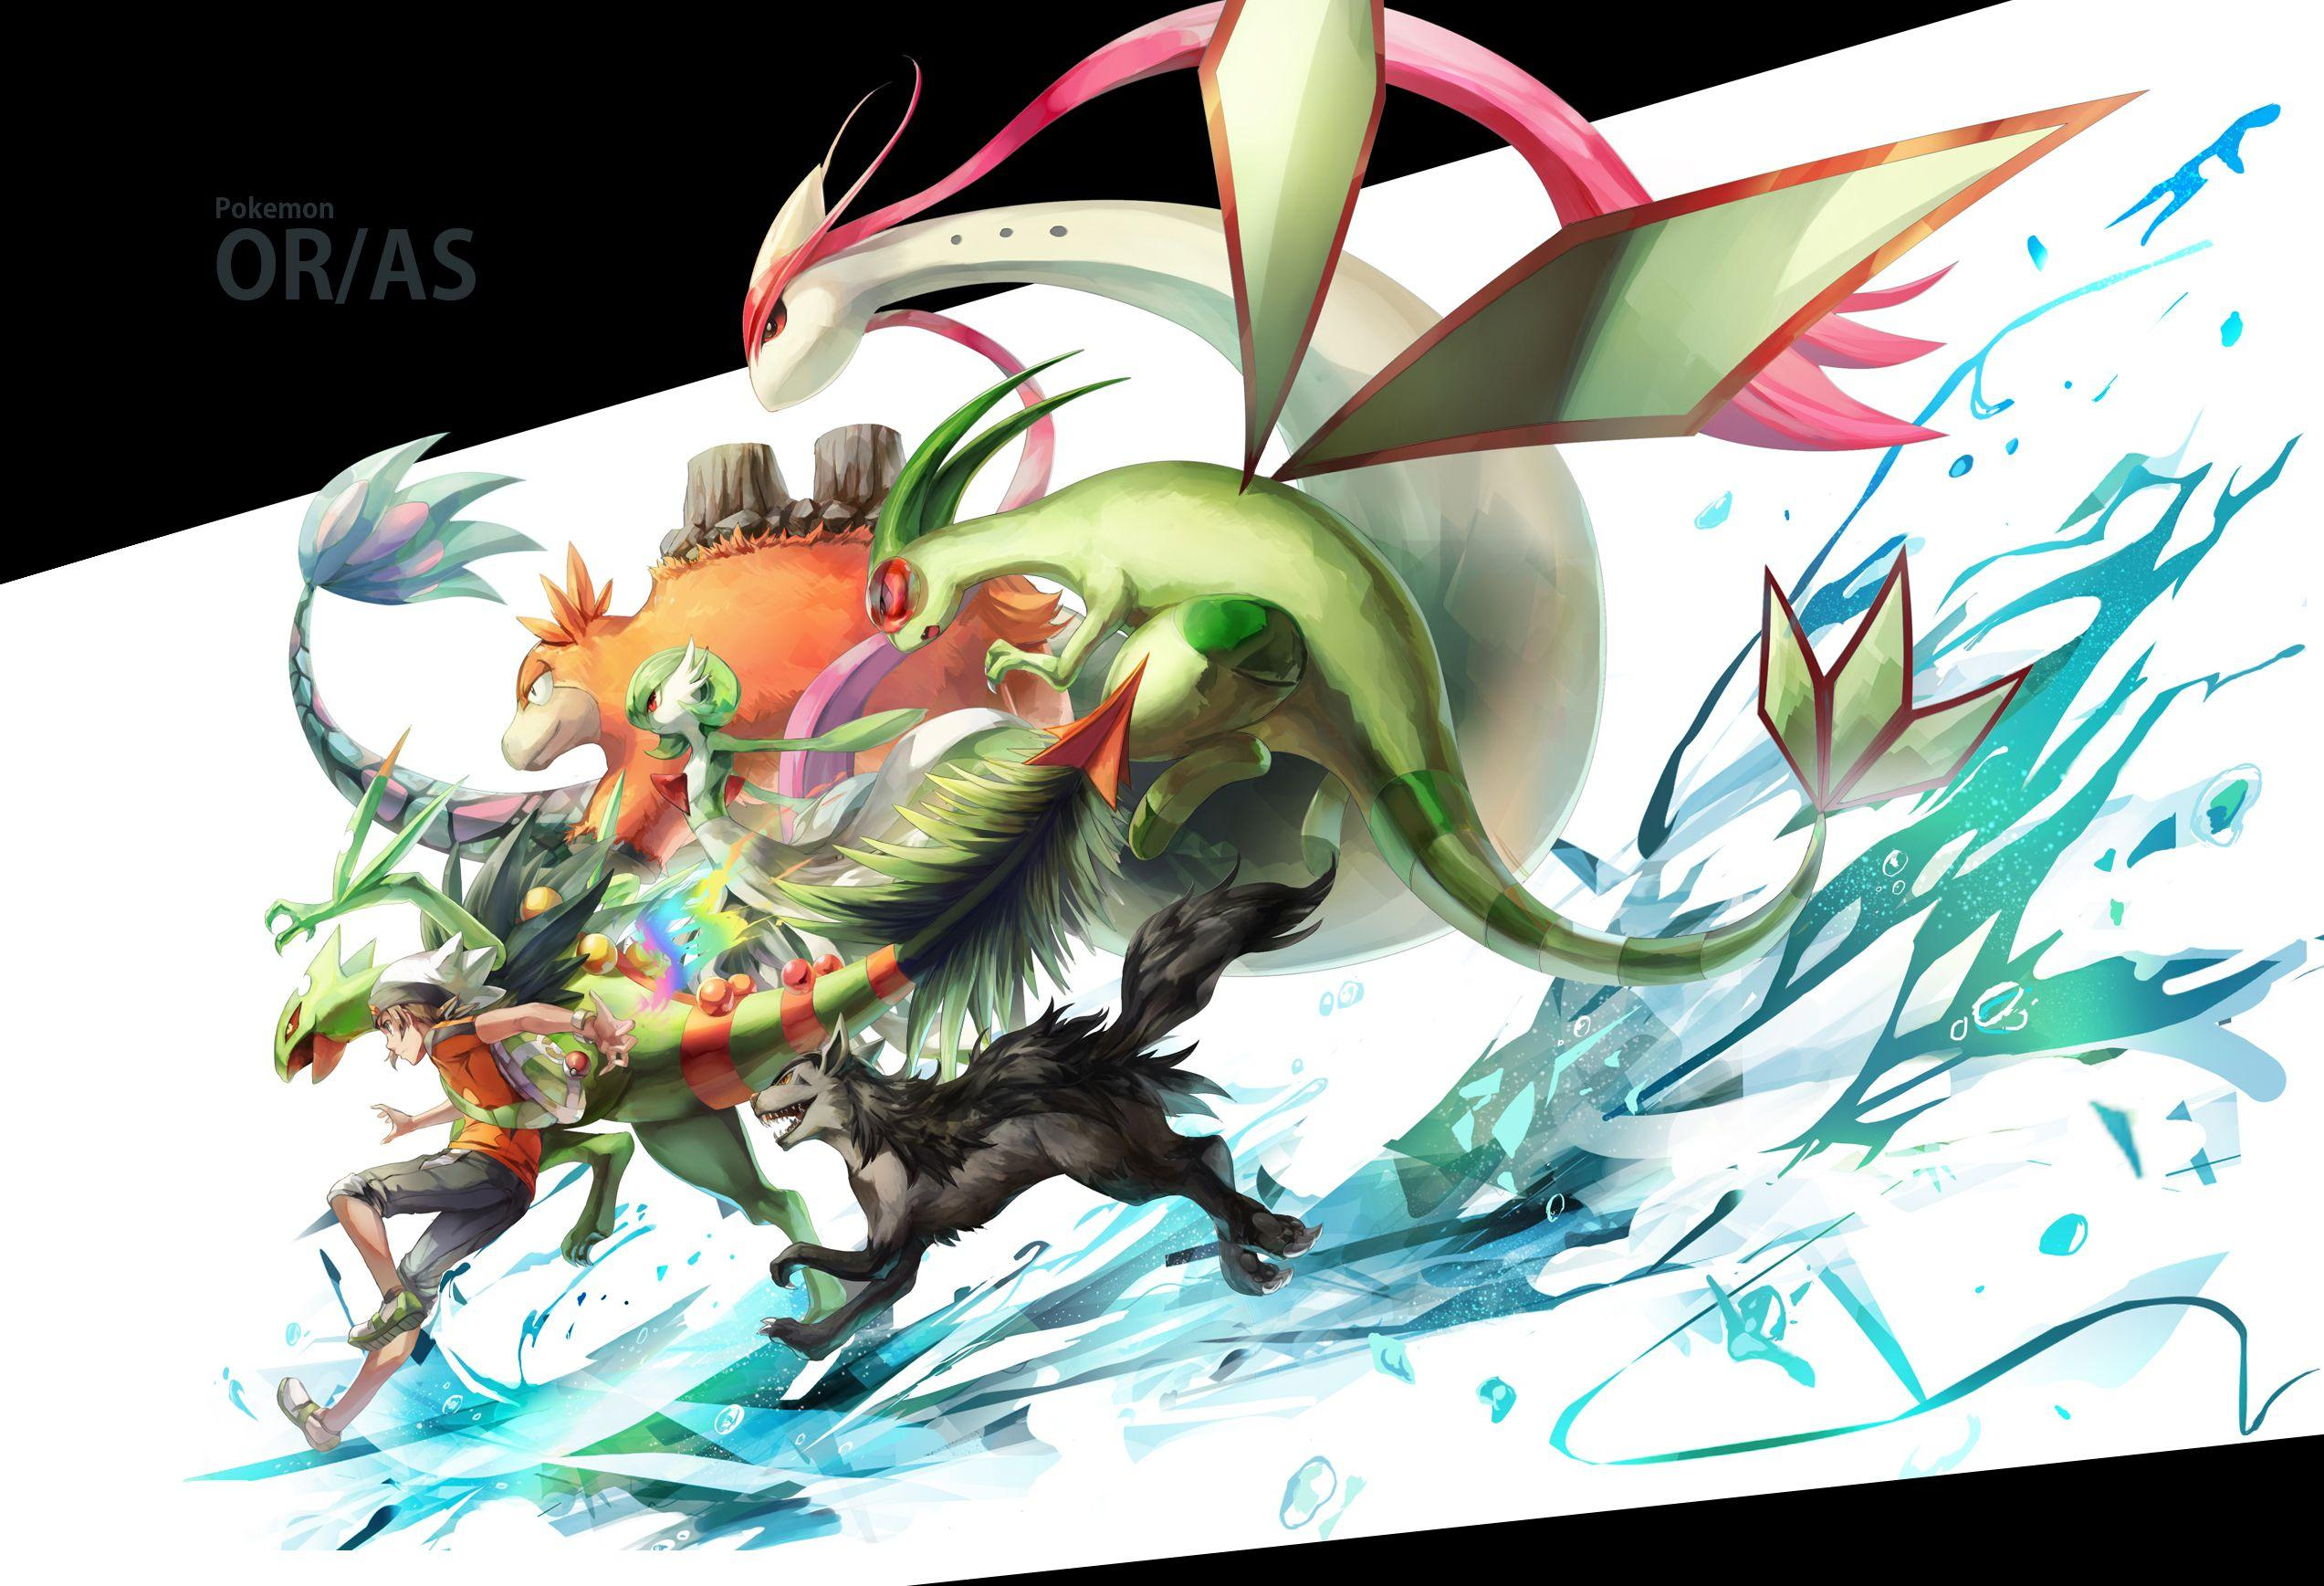 4 Camerupt (Pokémon) HD Wallpapers | Background Images - Wallpaper Abyss